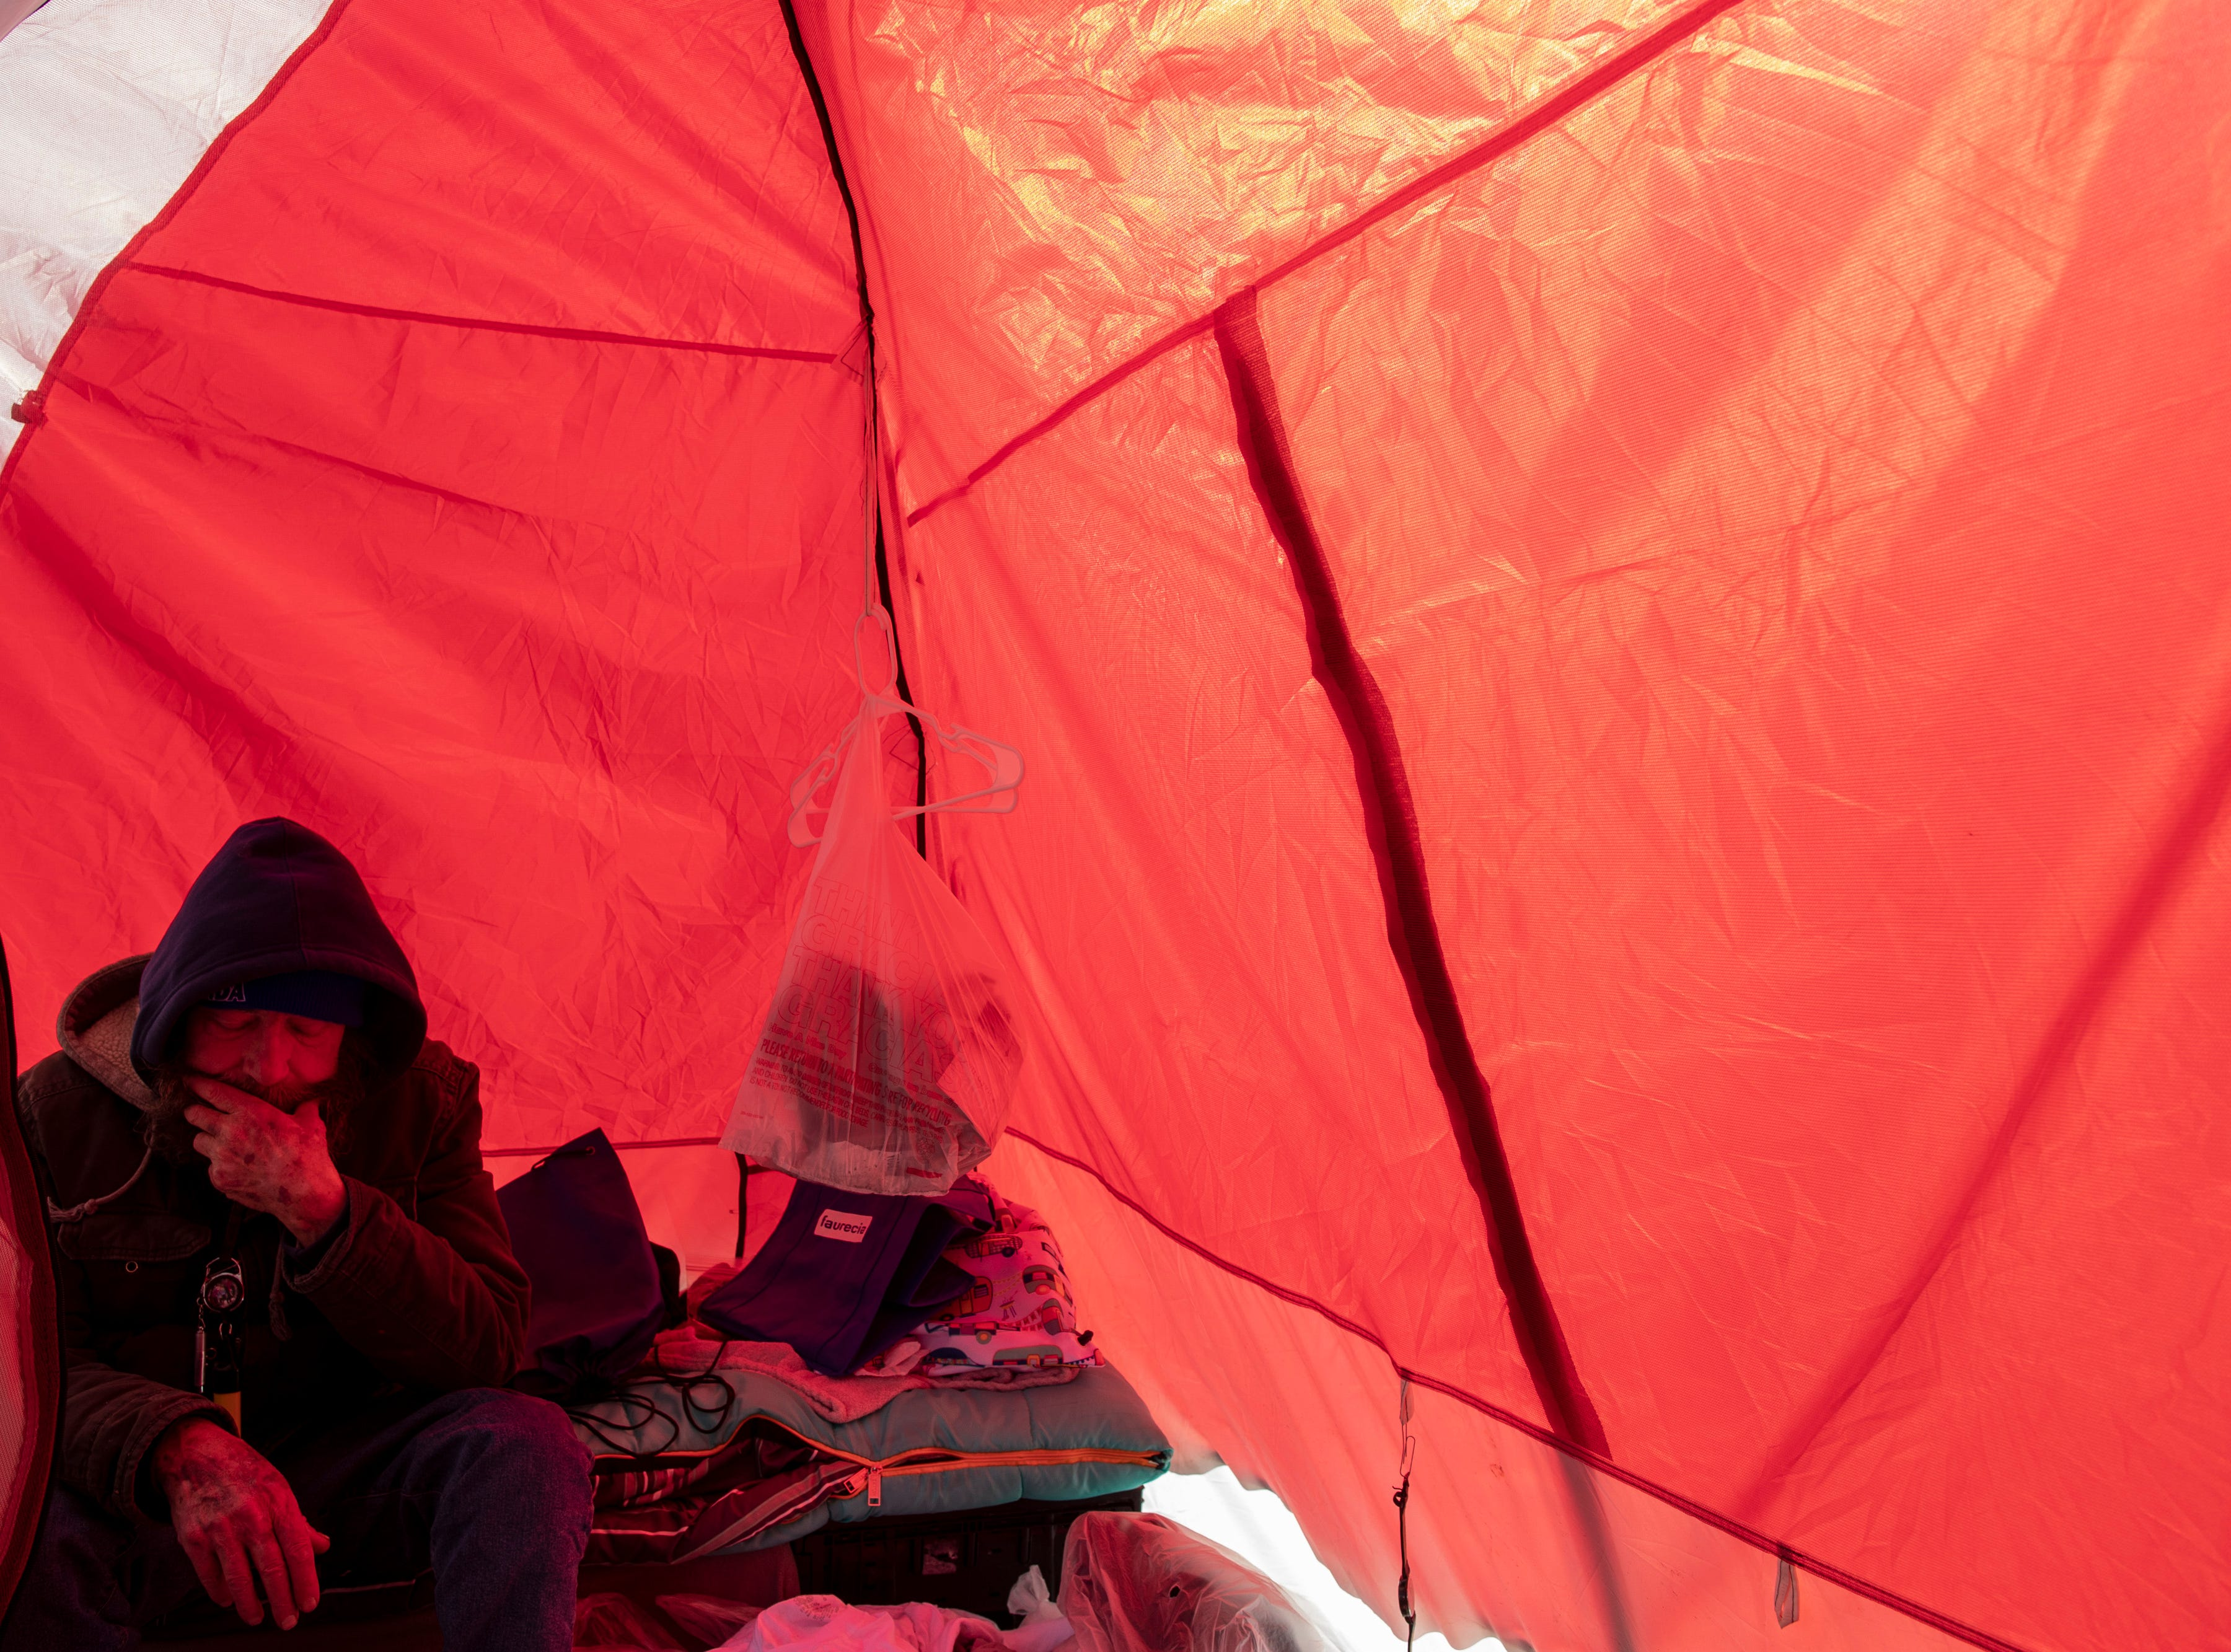 """Mitchell Sneed sits inside his tent at the homeless camp area under the bypasses along East Jefferson Street and Jackson Street in downtown Louisville. """"I'm not surprised they want everyone gone,"""" Sneed said. """"You look around and you see how trashy people are."""" March 18, 2019"""